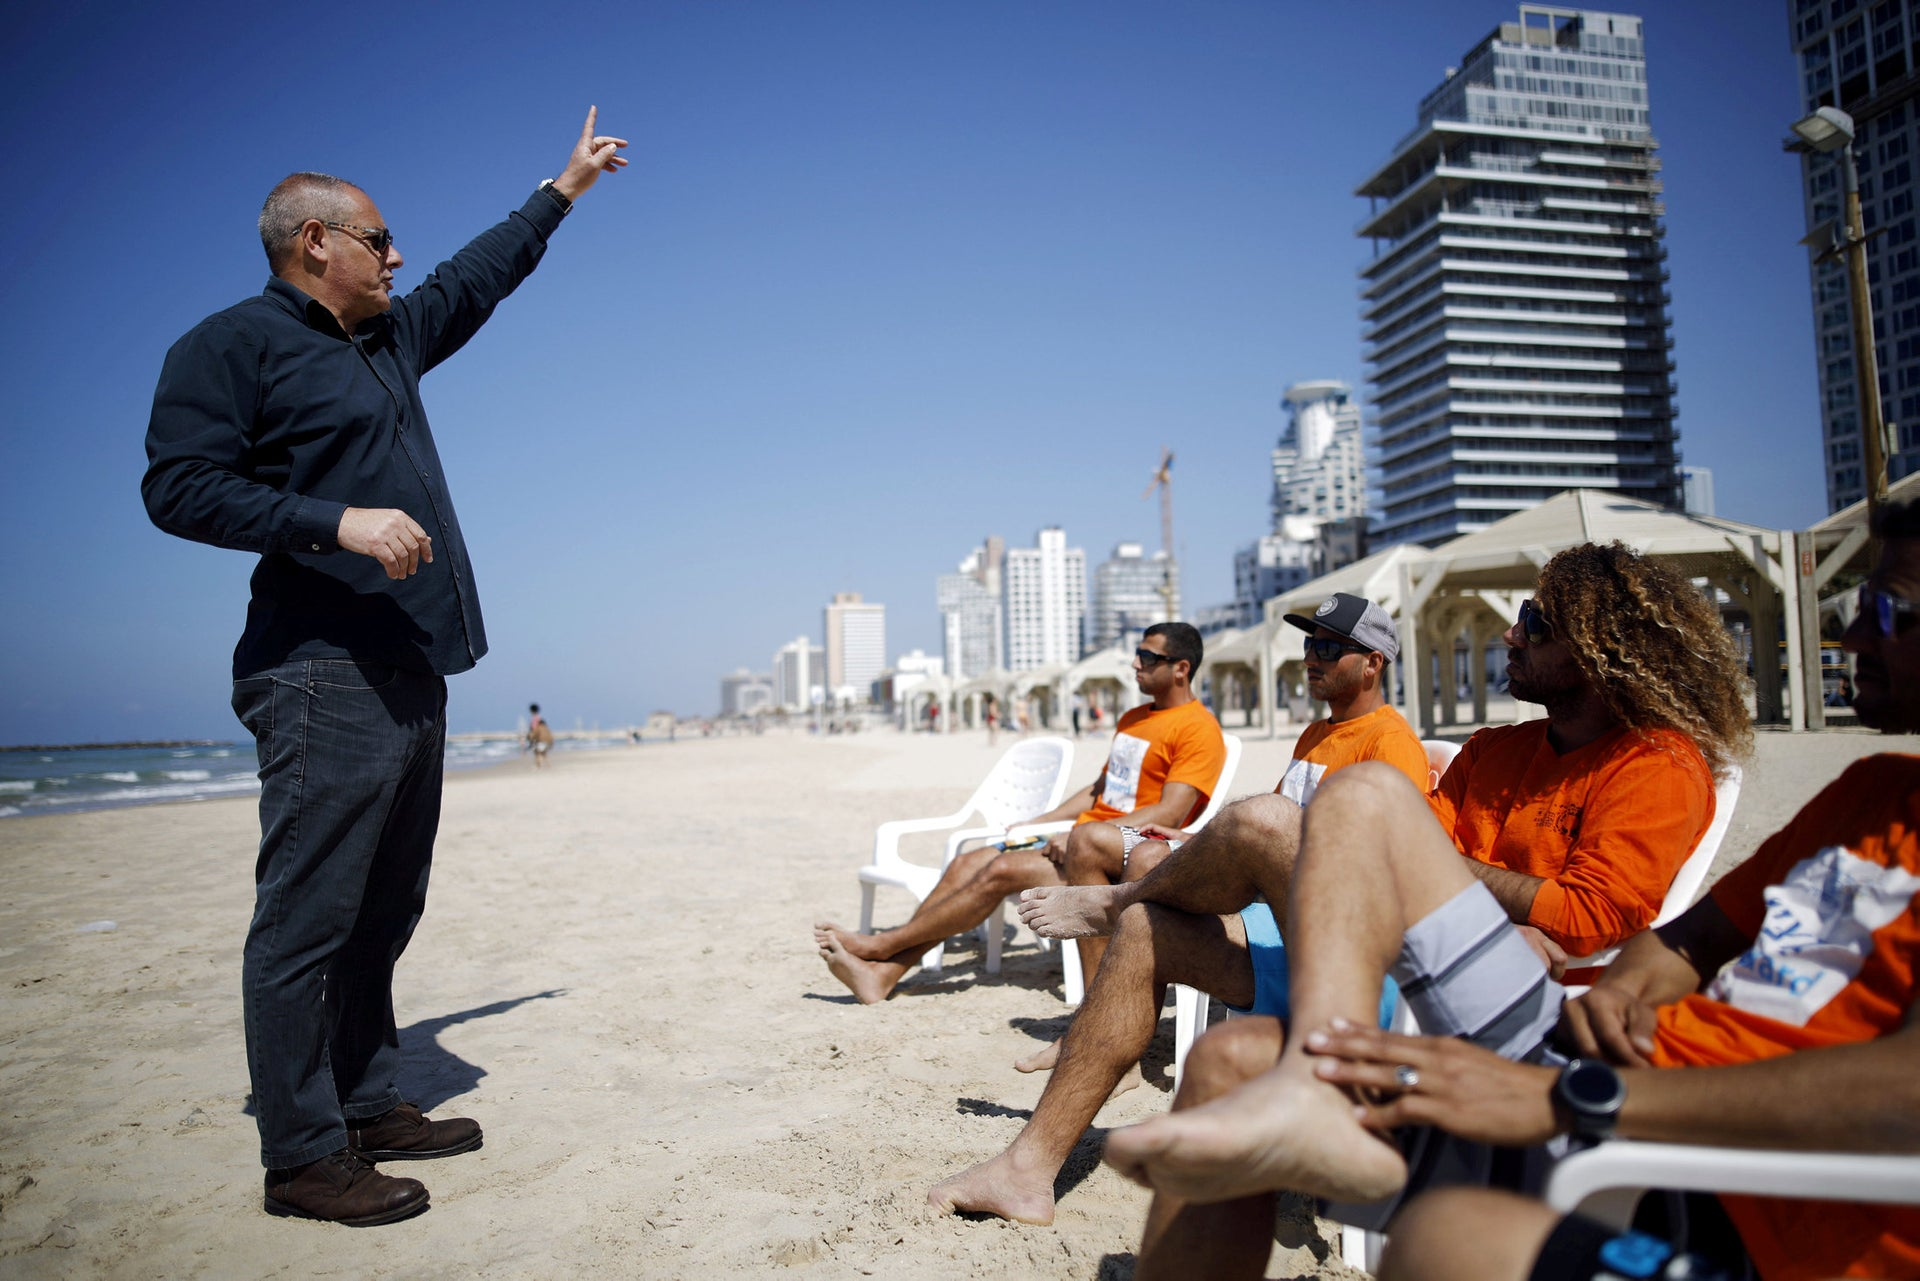 Life guards participate in a training session as part of an initiative by the Tel Aviv municipality to equip service industry workers with skills to help them treat tourists politely, as the city prepares to host visitors during the Eurovision Song contest, in Tel Aviv, Israel March 6, 2019.